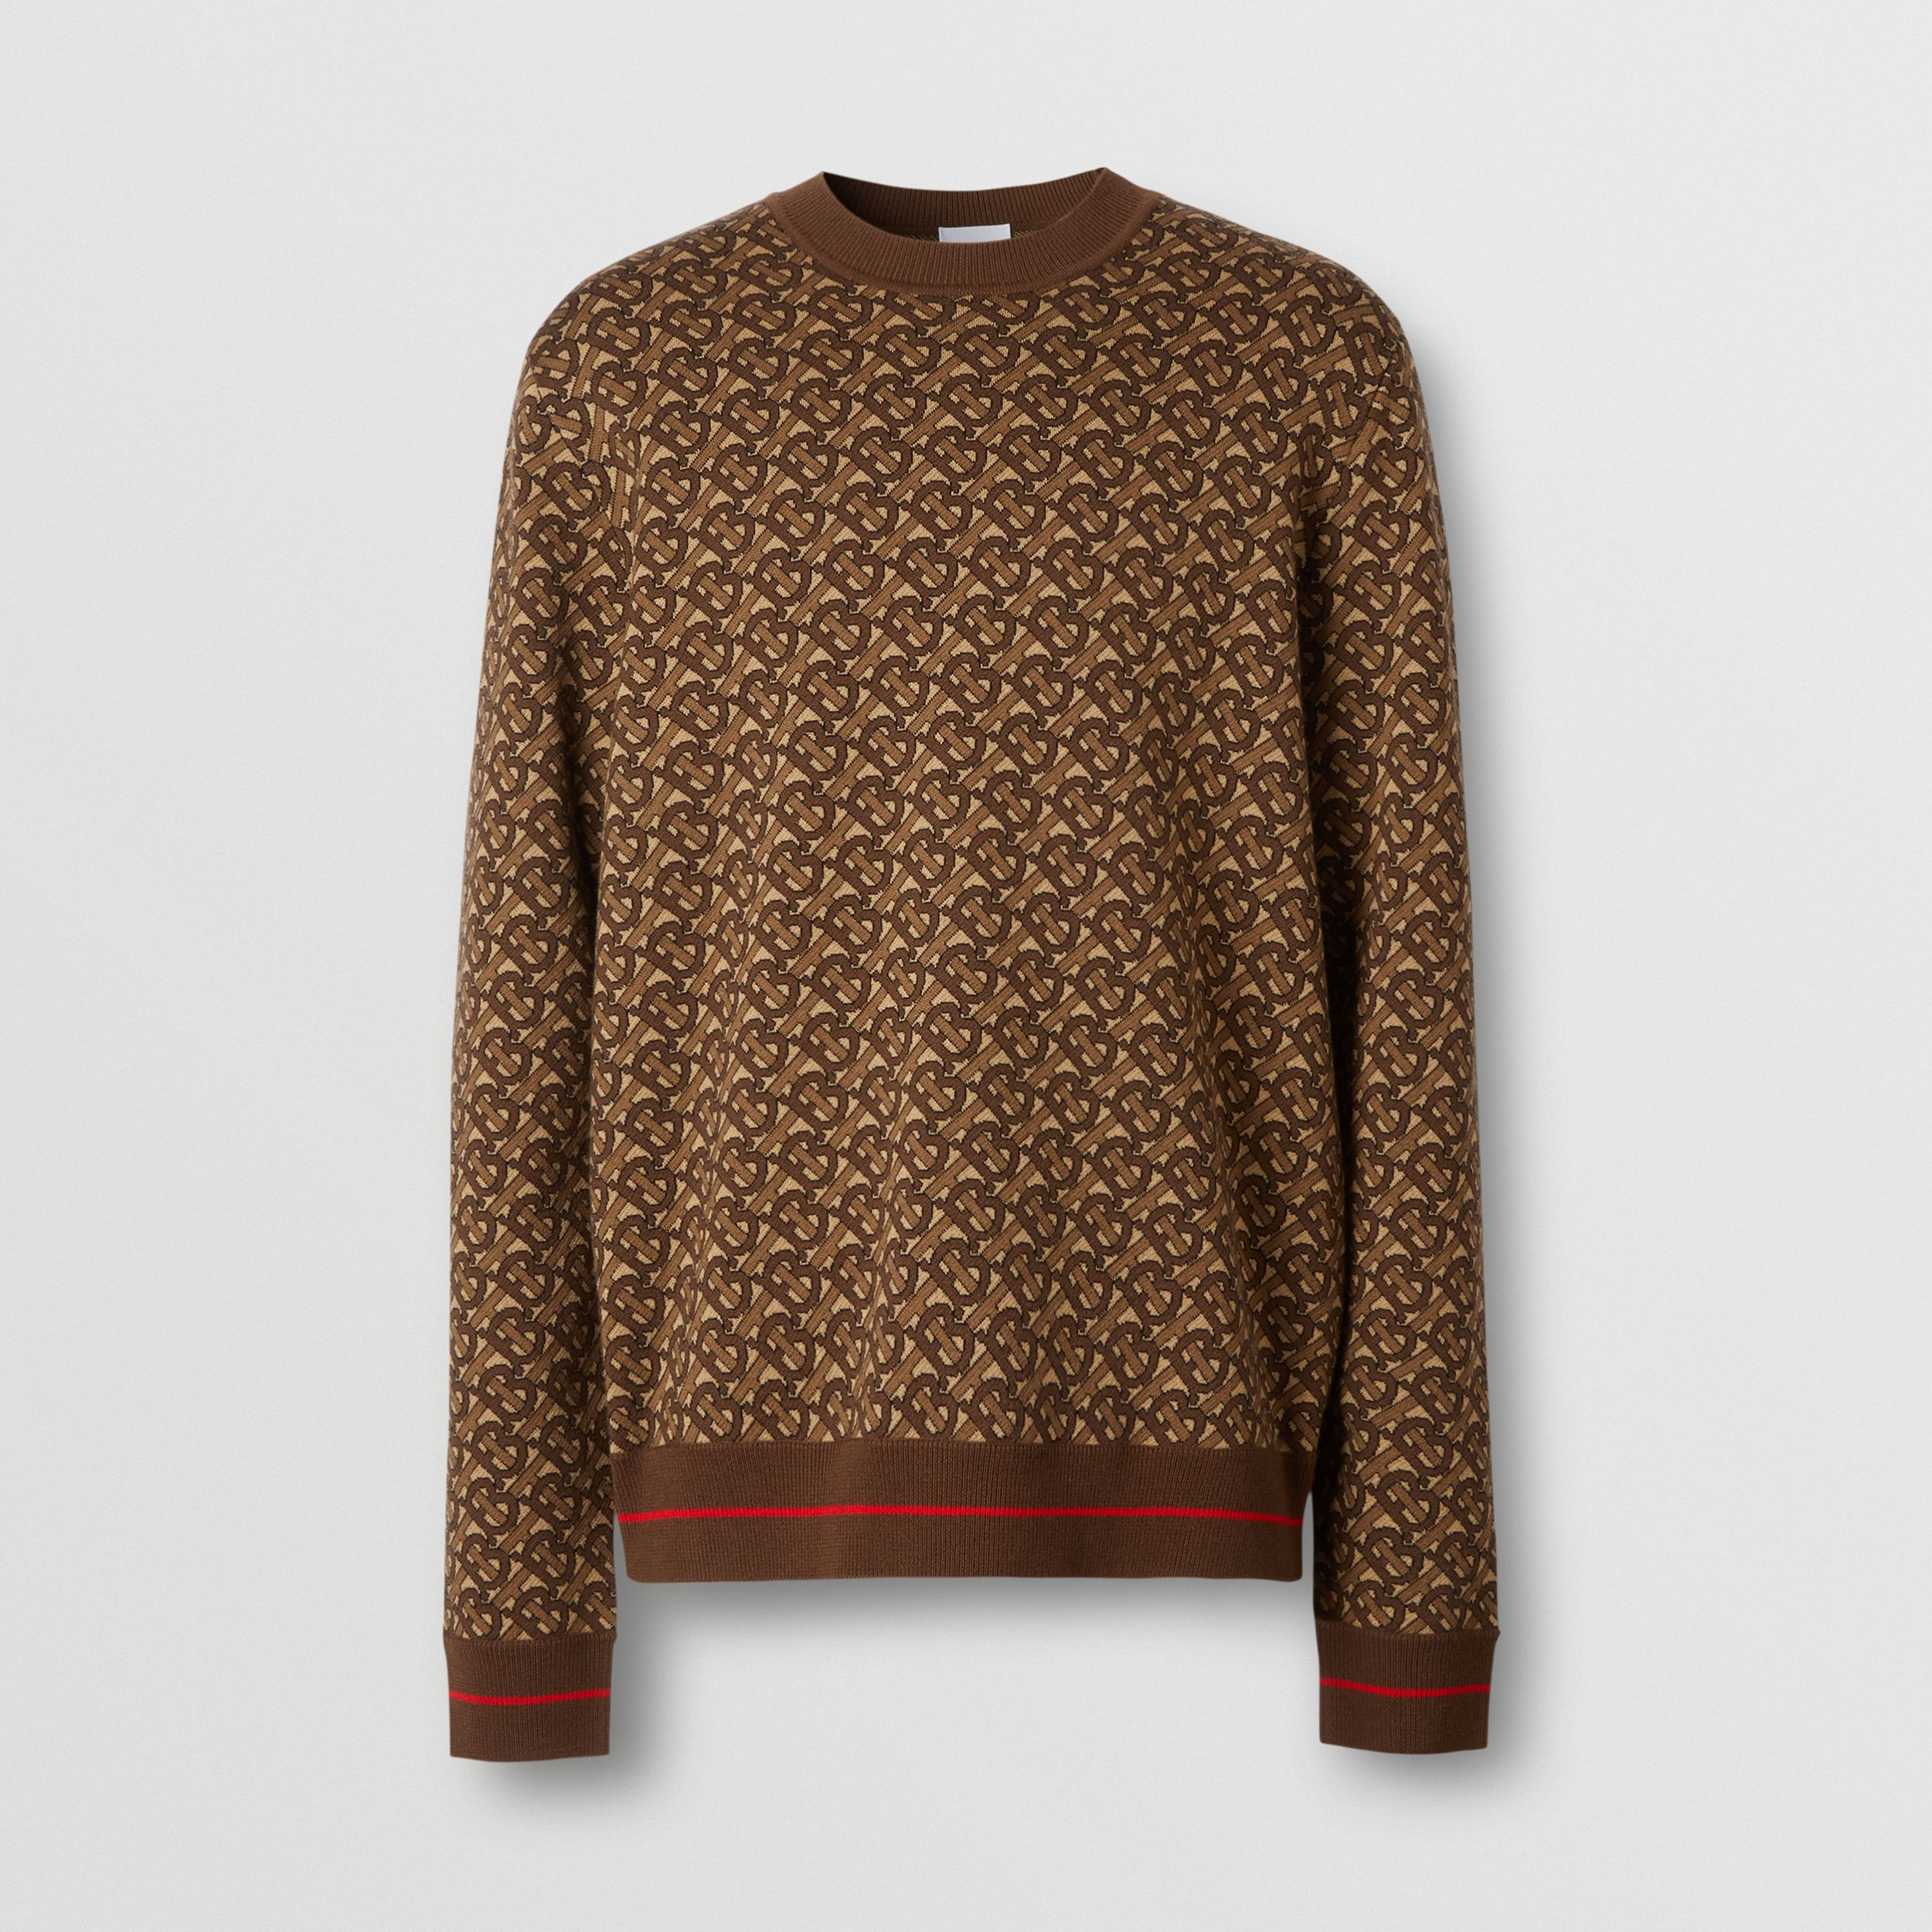 Monogram Merino Wool Jacquard Sweater in Bridle Brown - Men | Burberry - 4